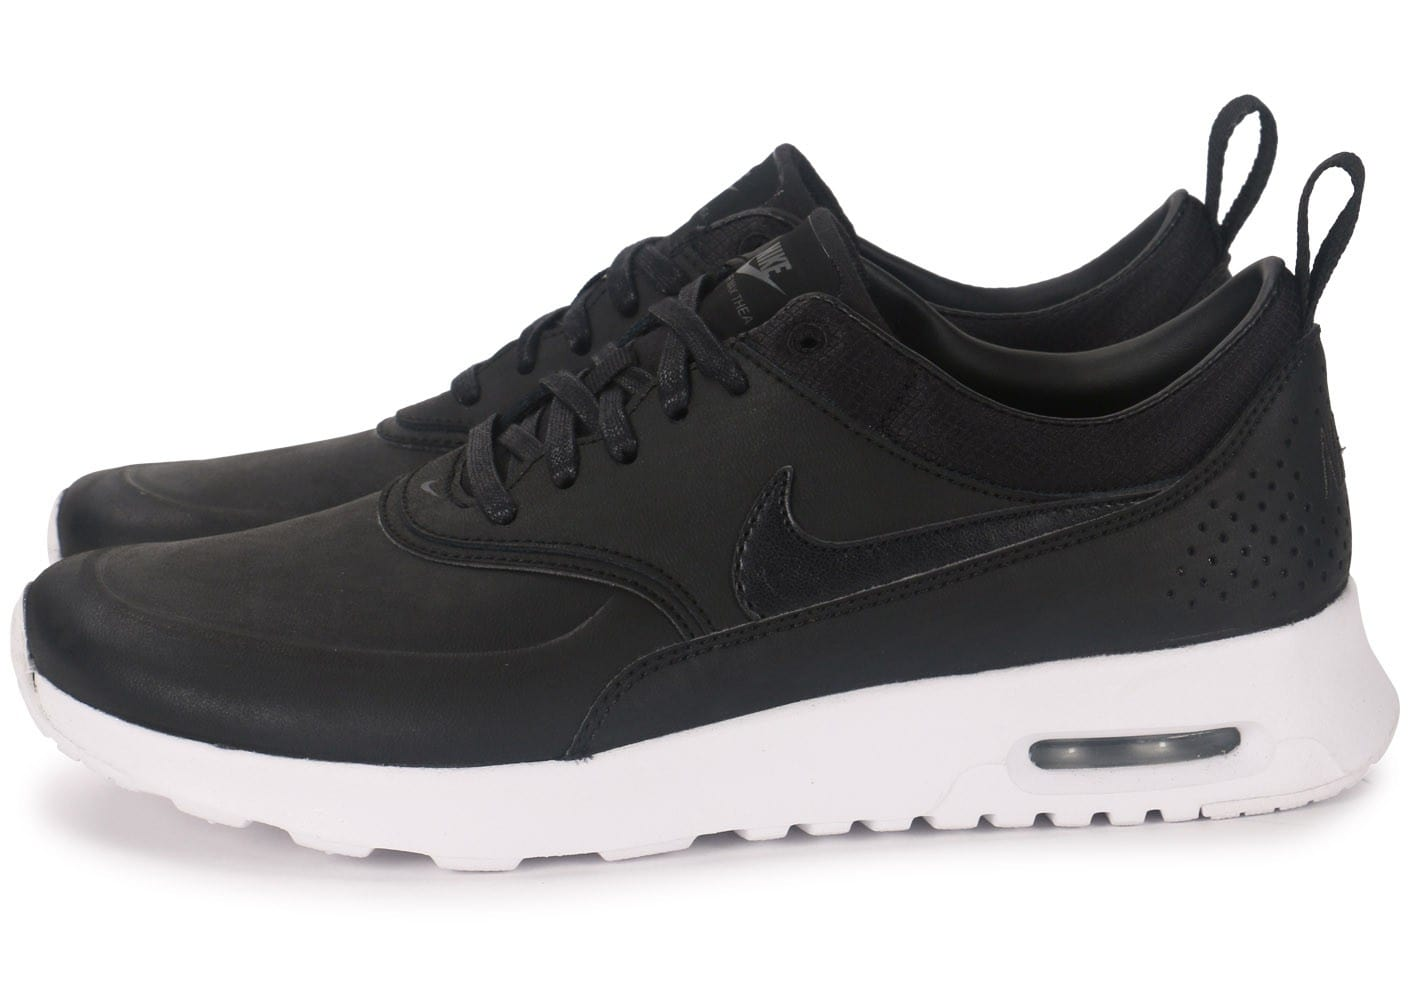 nike air max thea cuir noire chaussures chaussures. Black Bedroom Furniture Sets. Home Design Ideas